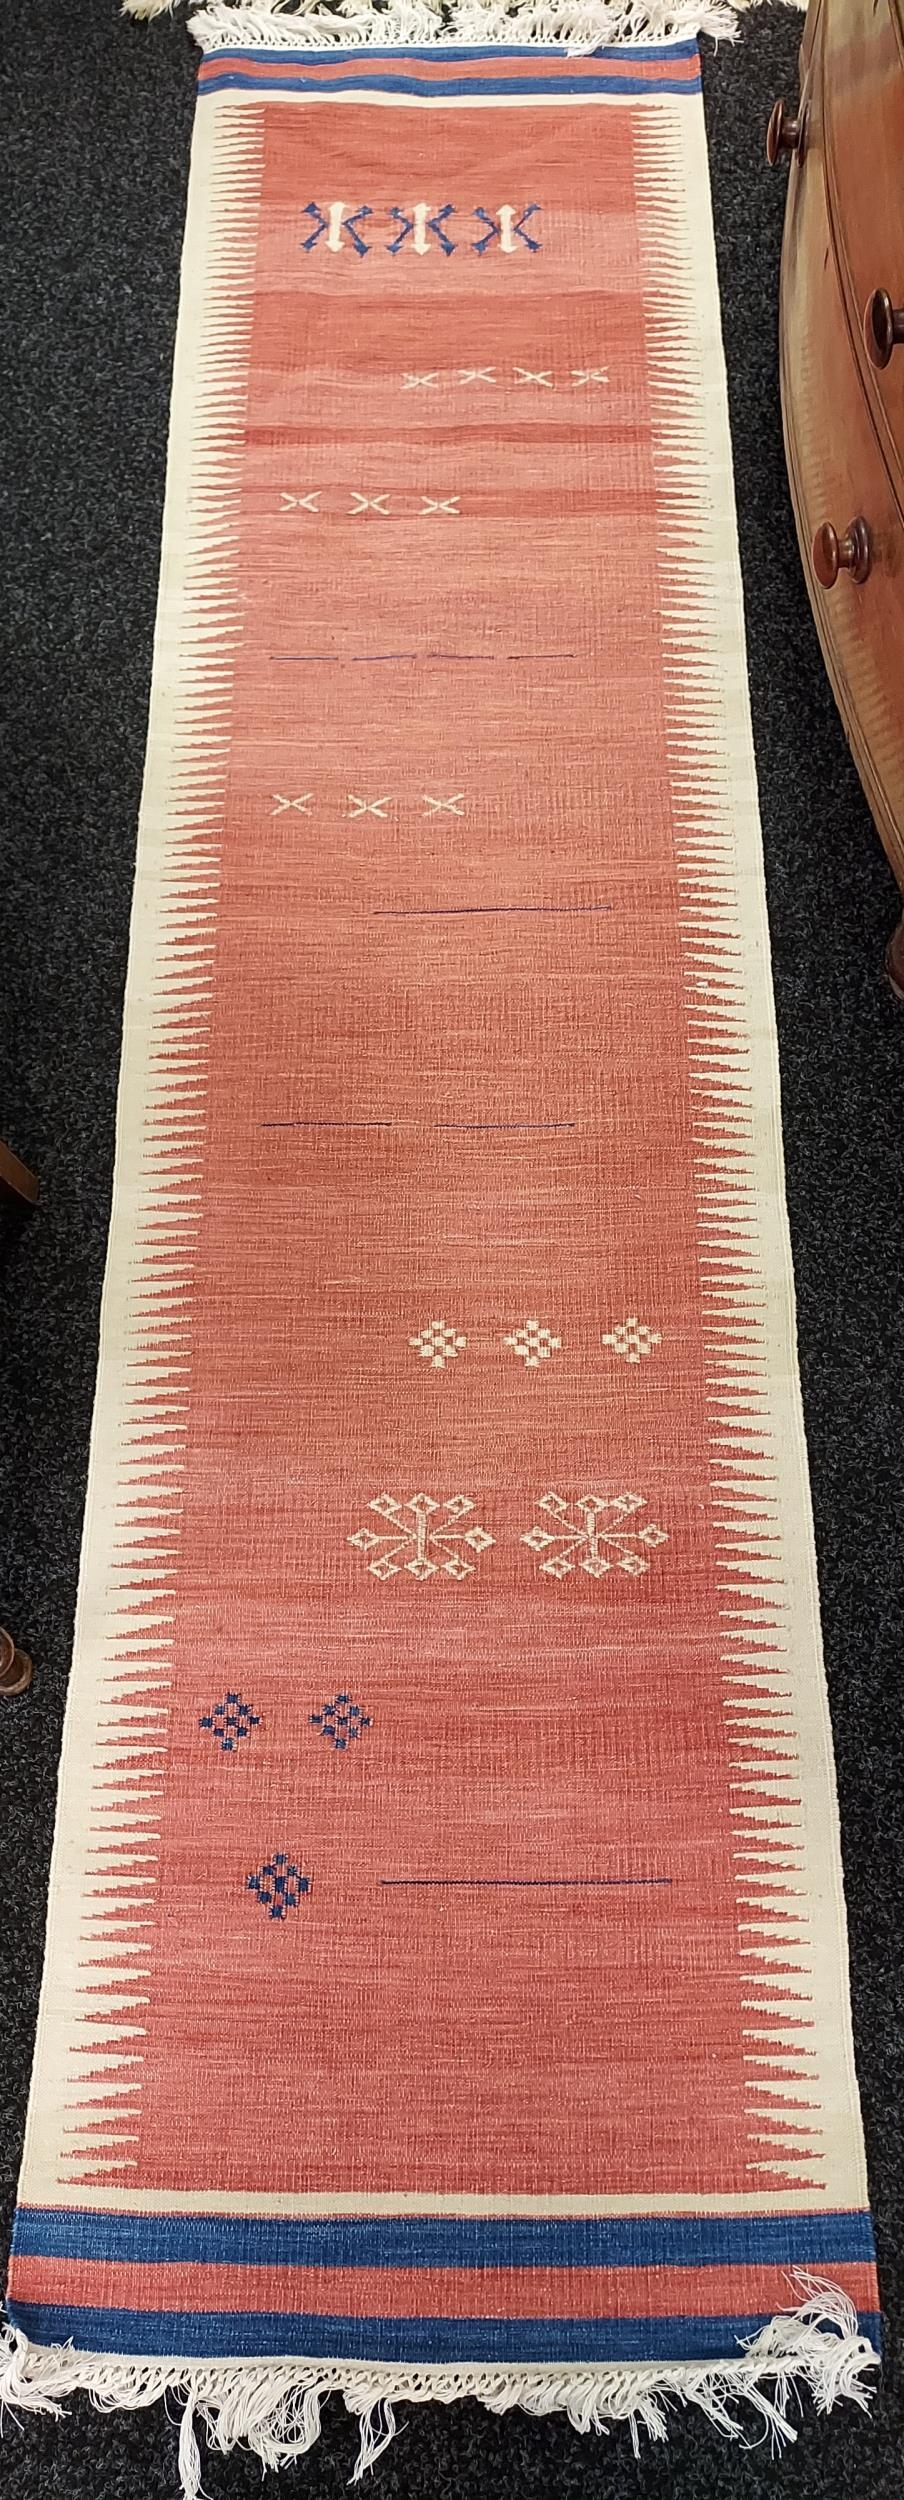 Flatwoven Indian rug by Jagdish Bangaa for Nomads Tents [description attached] [254x62cm]